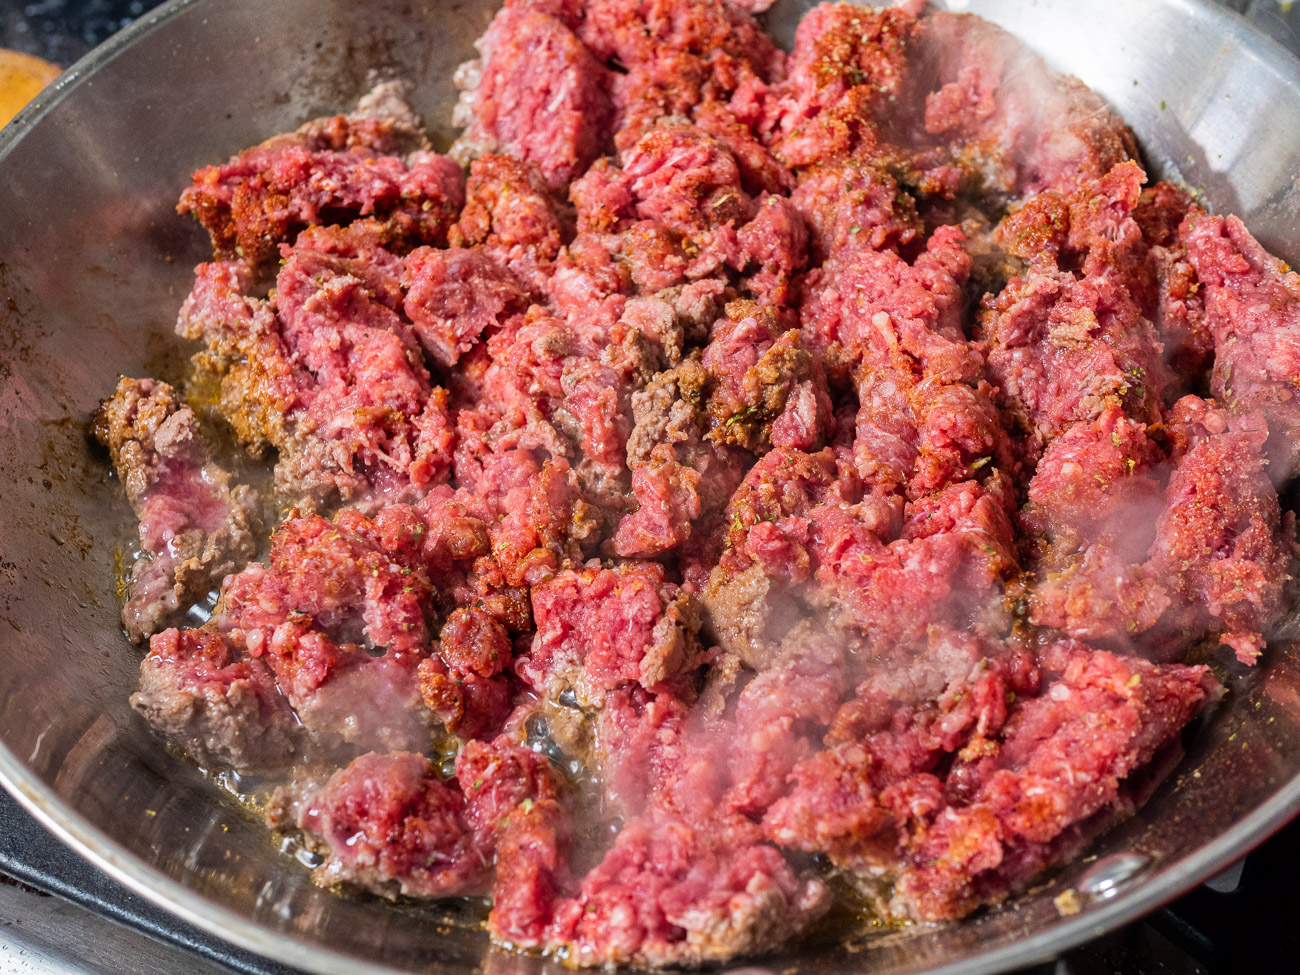 Brown ground beef in a skillet, seasoning it with garlic powder, Italian seasoning, paprika, and chili powder. Drain excess fat and set aside.